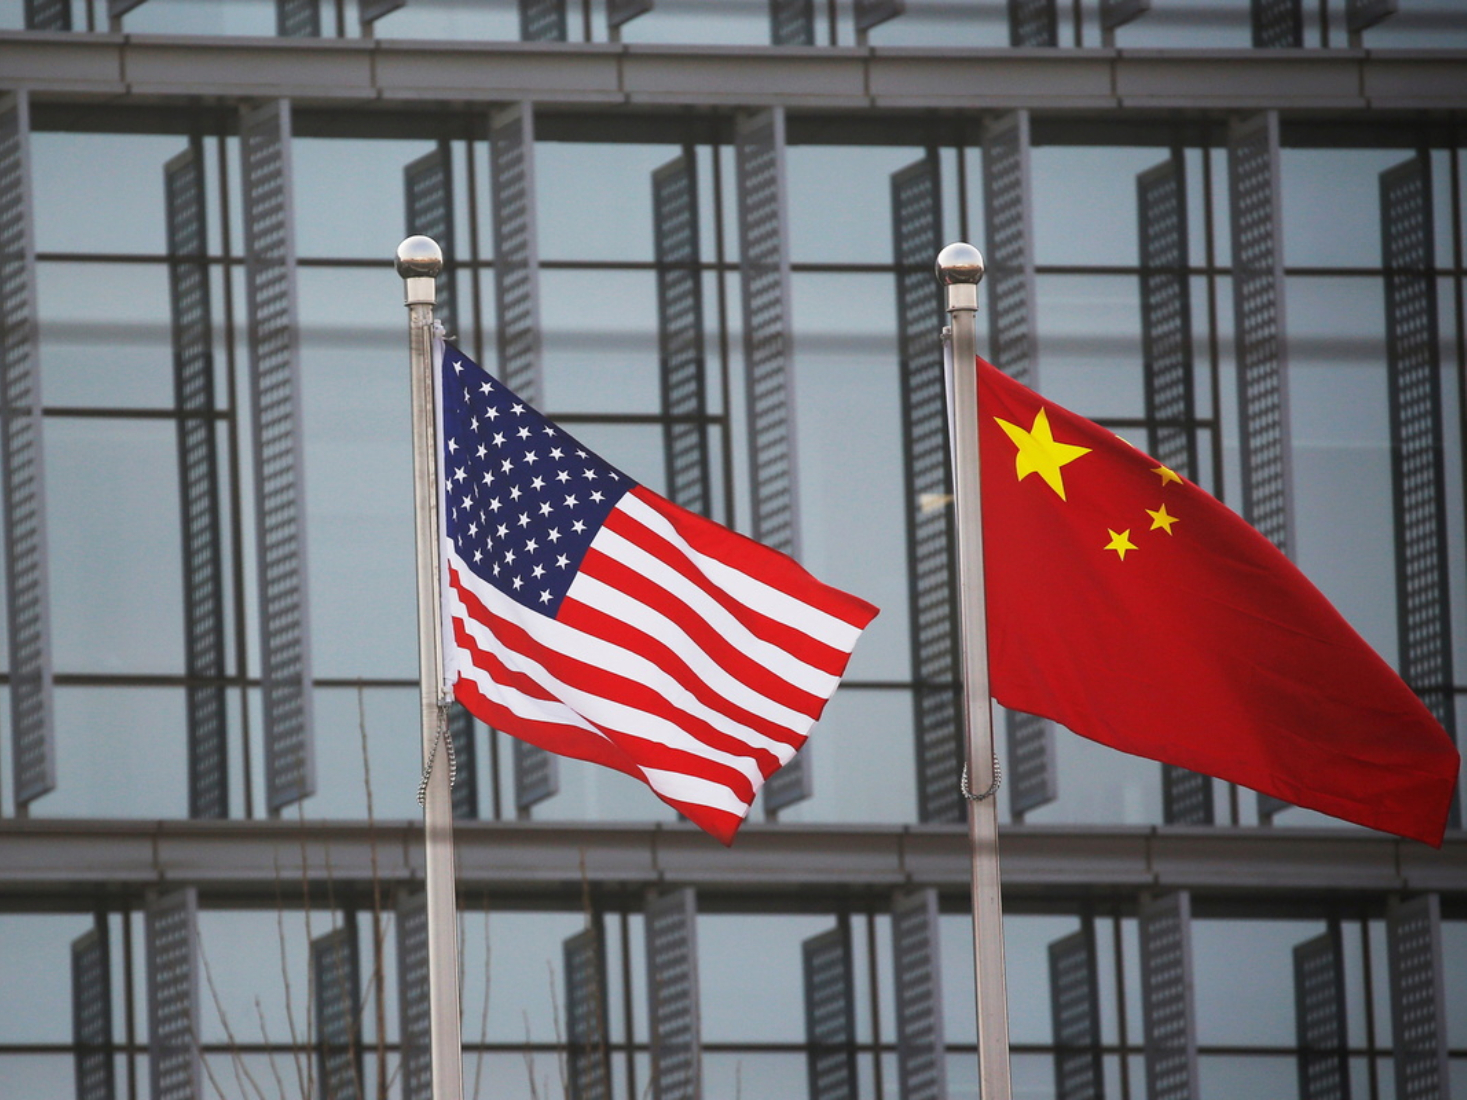 US export restrictions on Chinese tech companies hurt both sides: expert